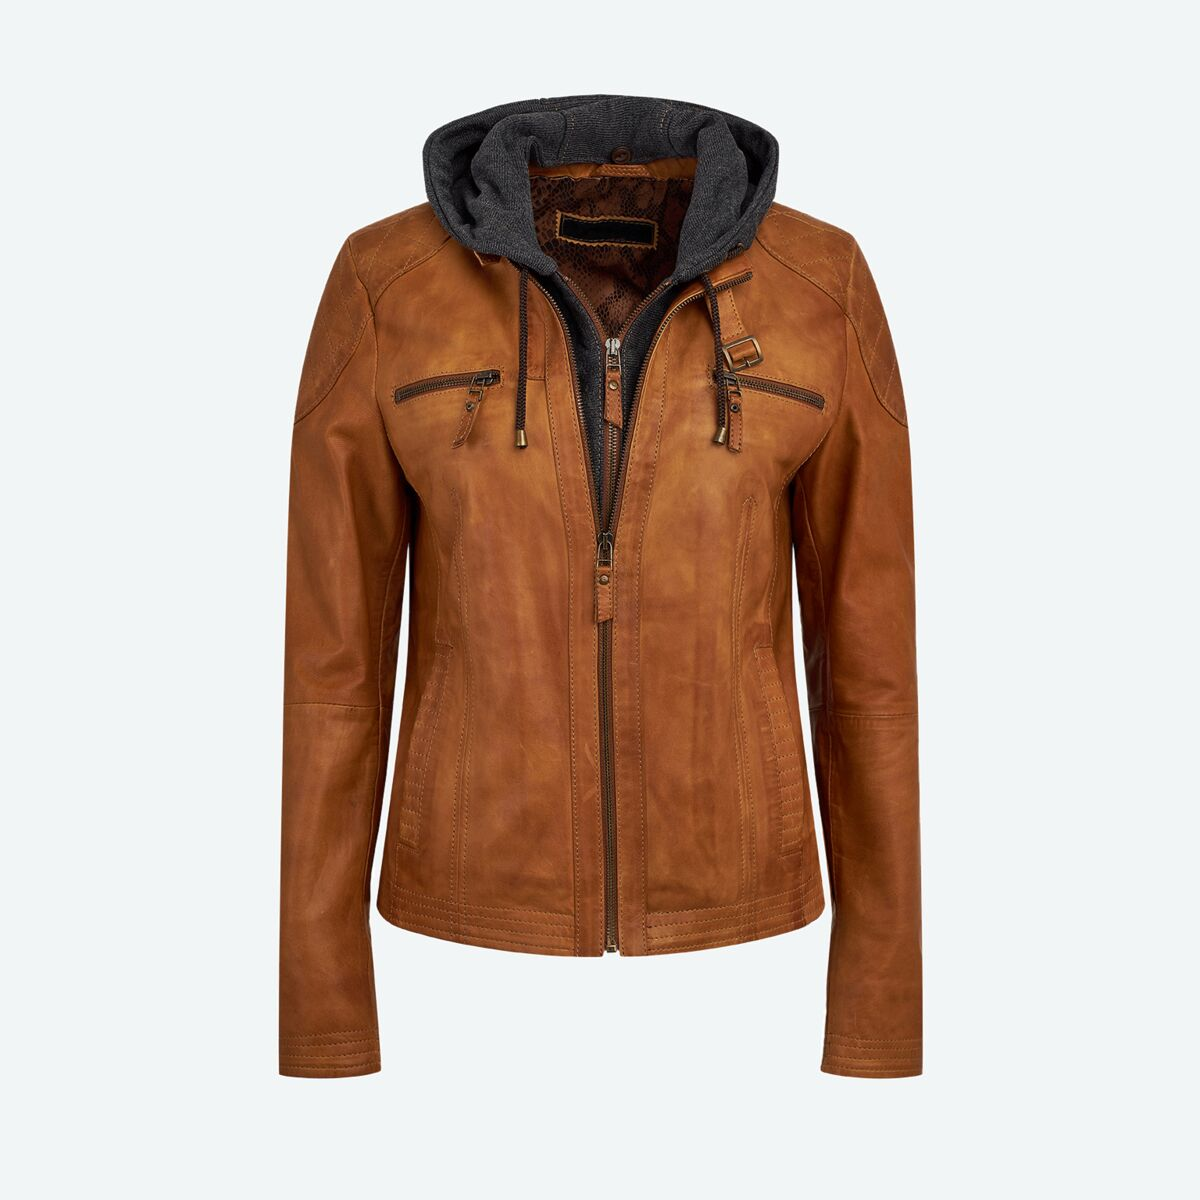 Women's Leather Jacket with Hood - Light Brown